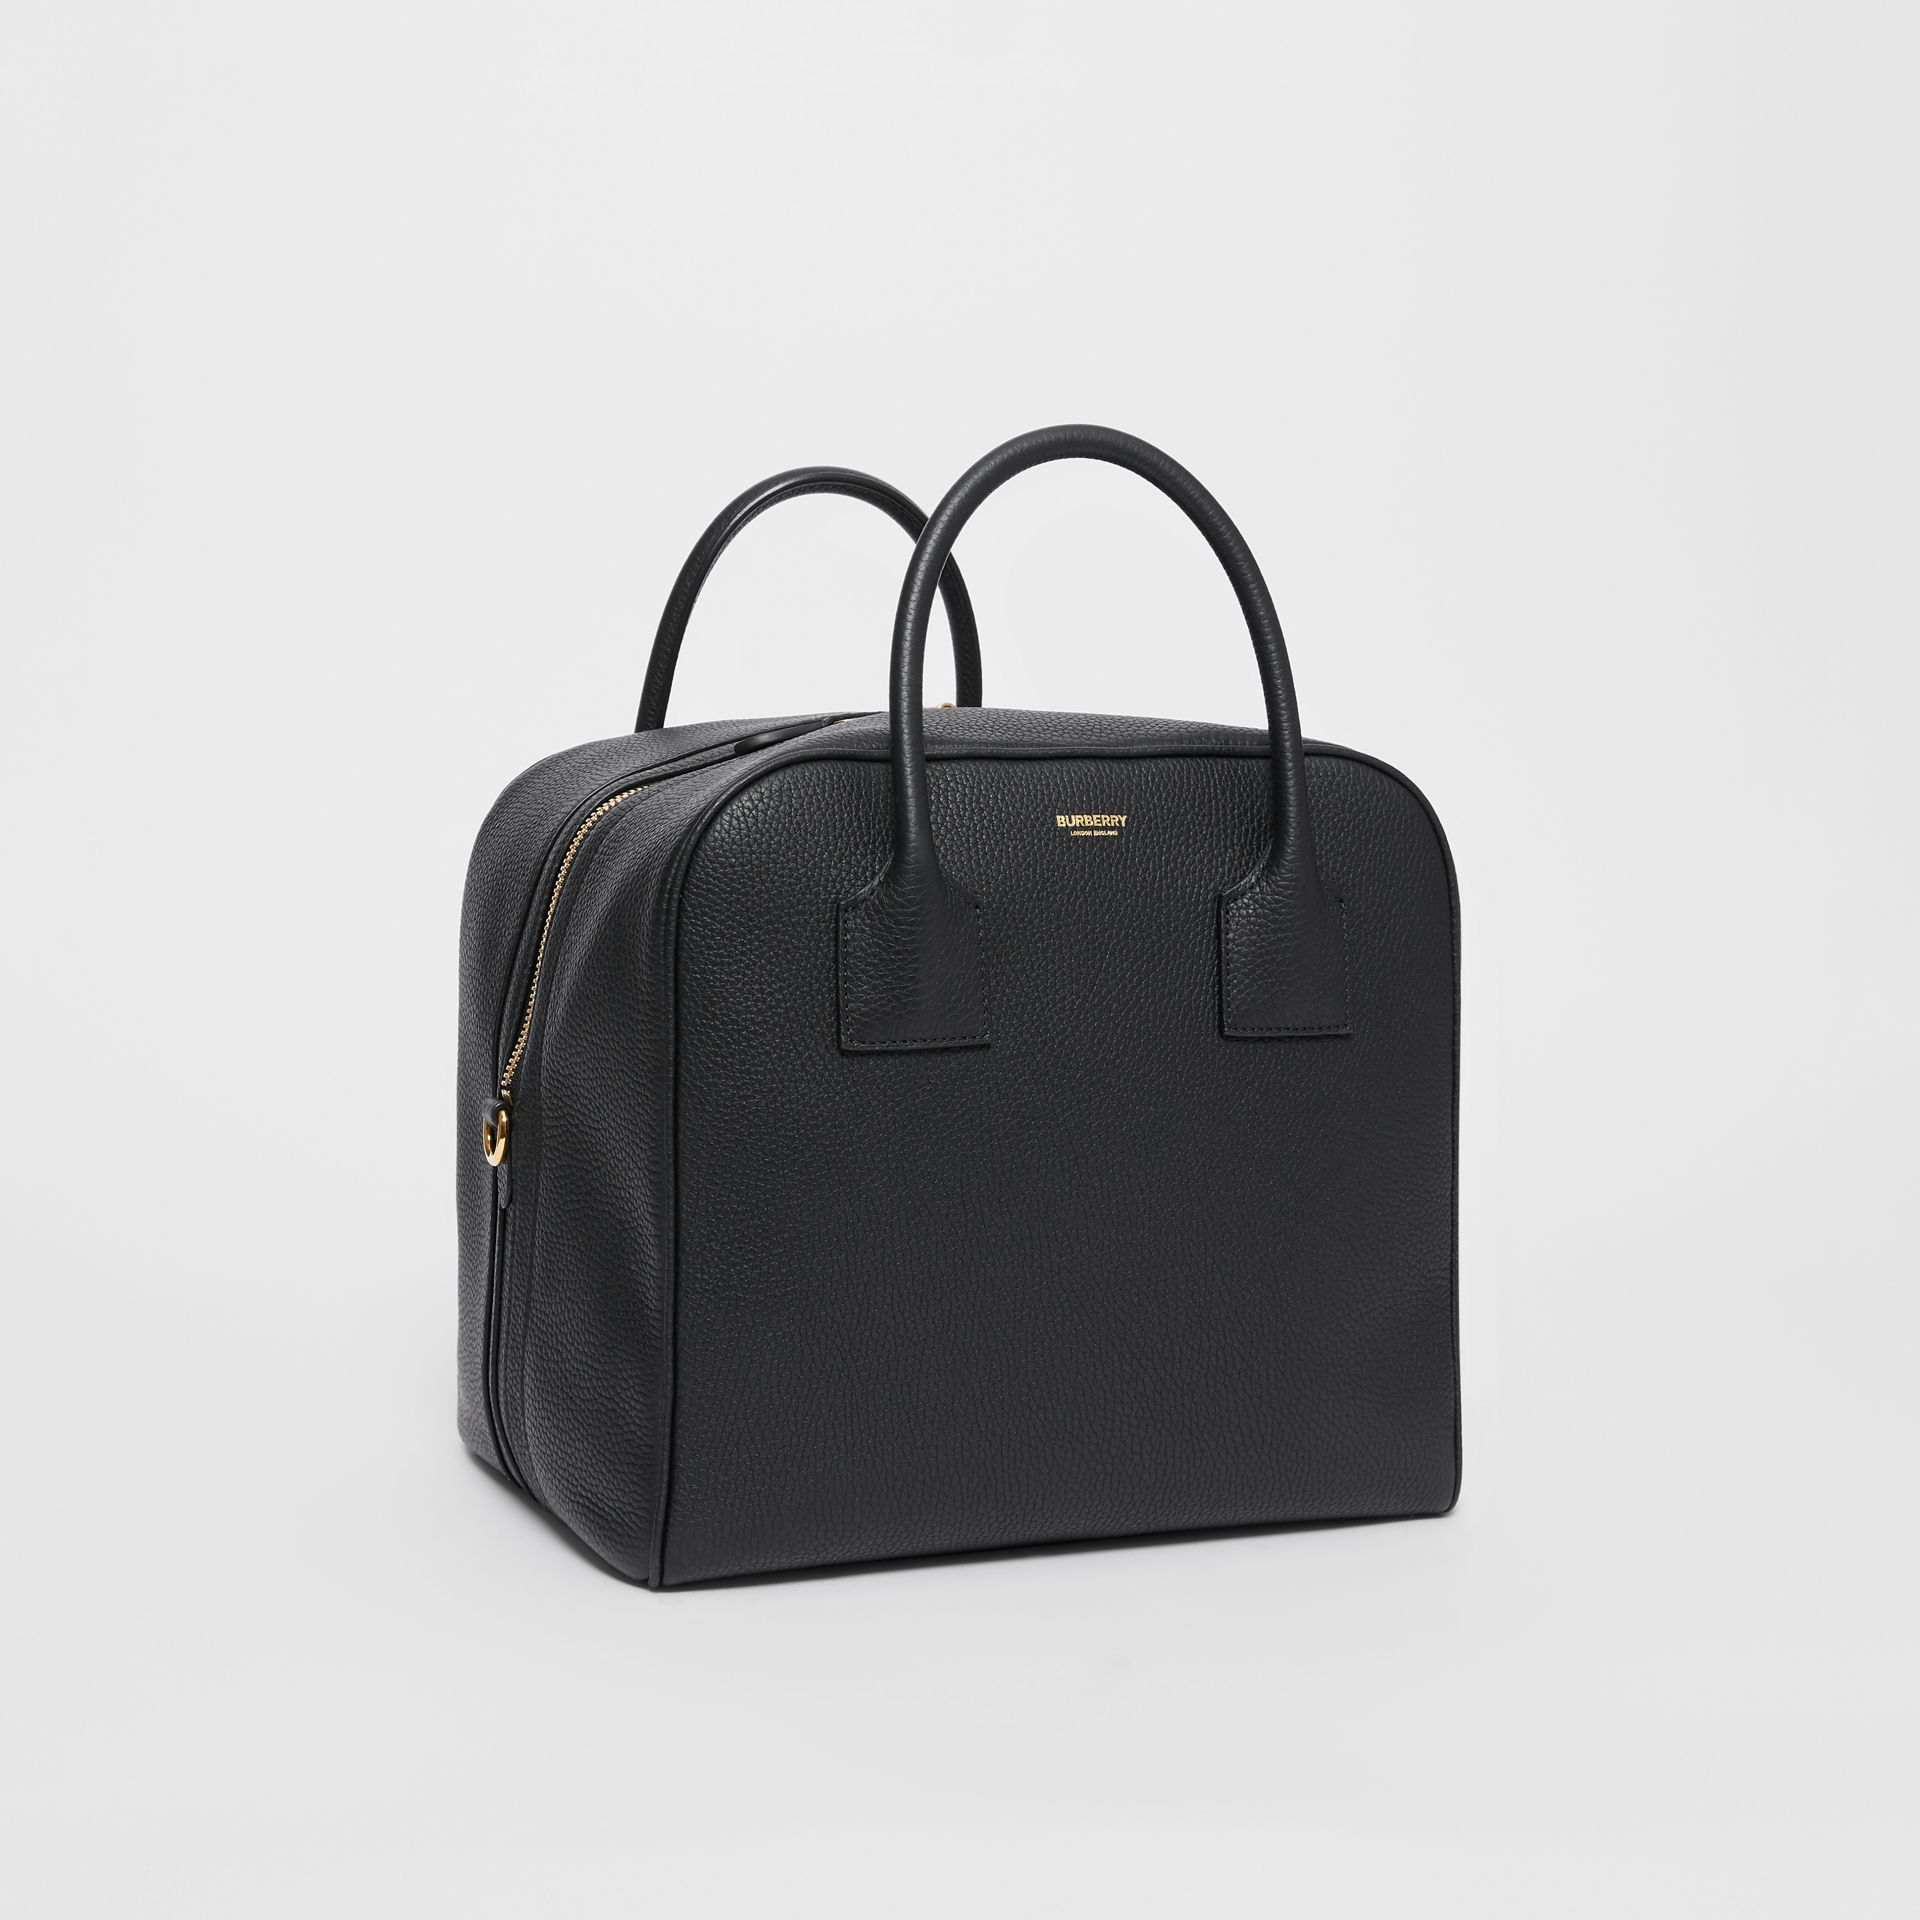 Medium Leather Cube Bag in Black - Women | Burberry Hong Kong S.A.R - gallery image 6